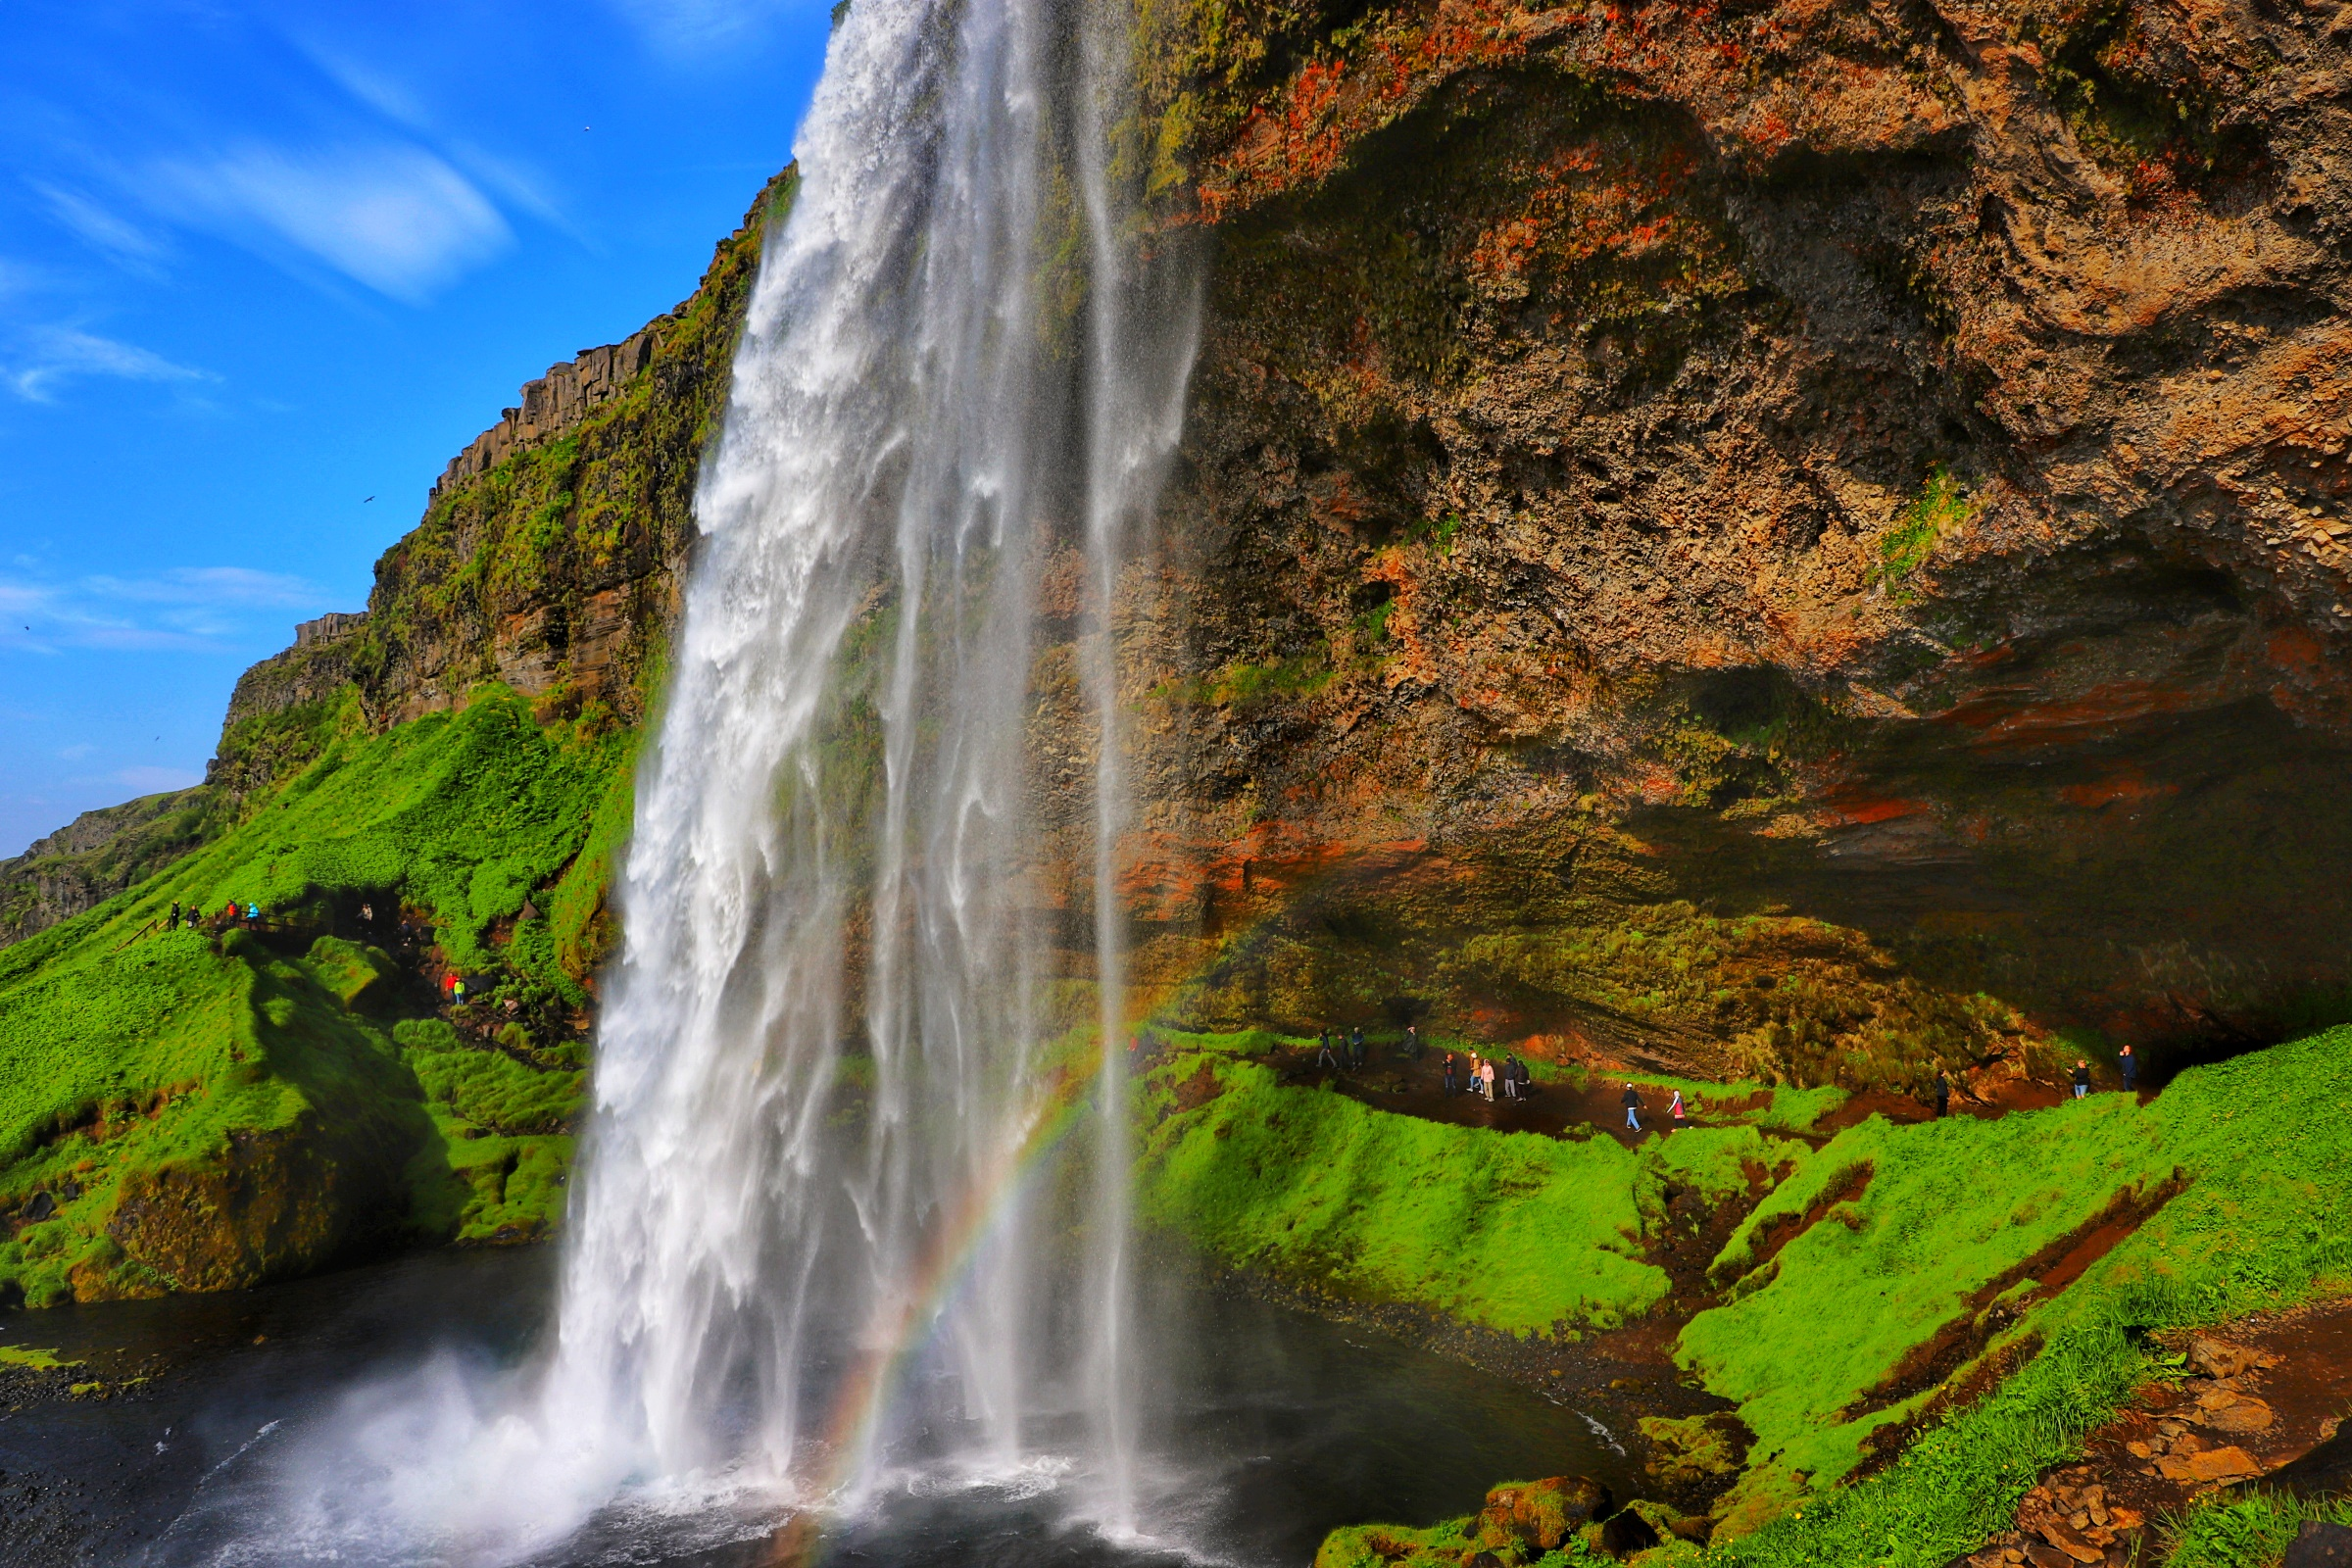 Visitors to Iceland's Seljalandsfoss waterfall are able to enjoy a view looking out from beyond the falls